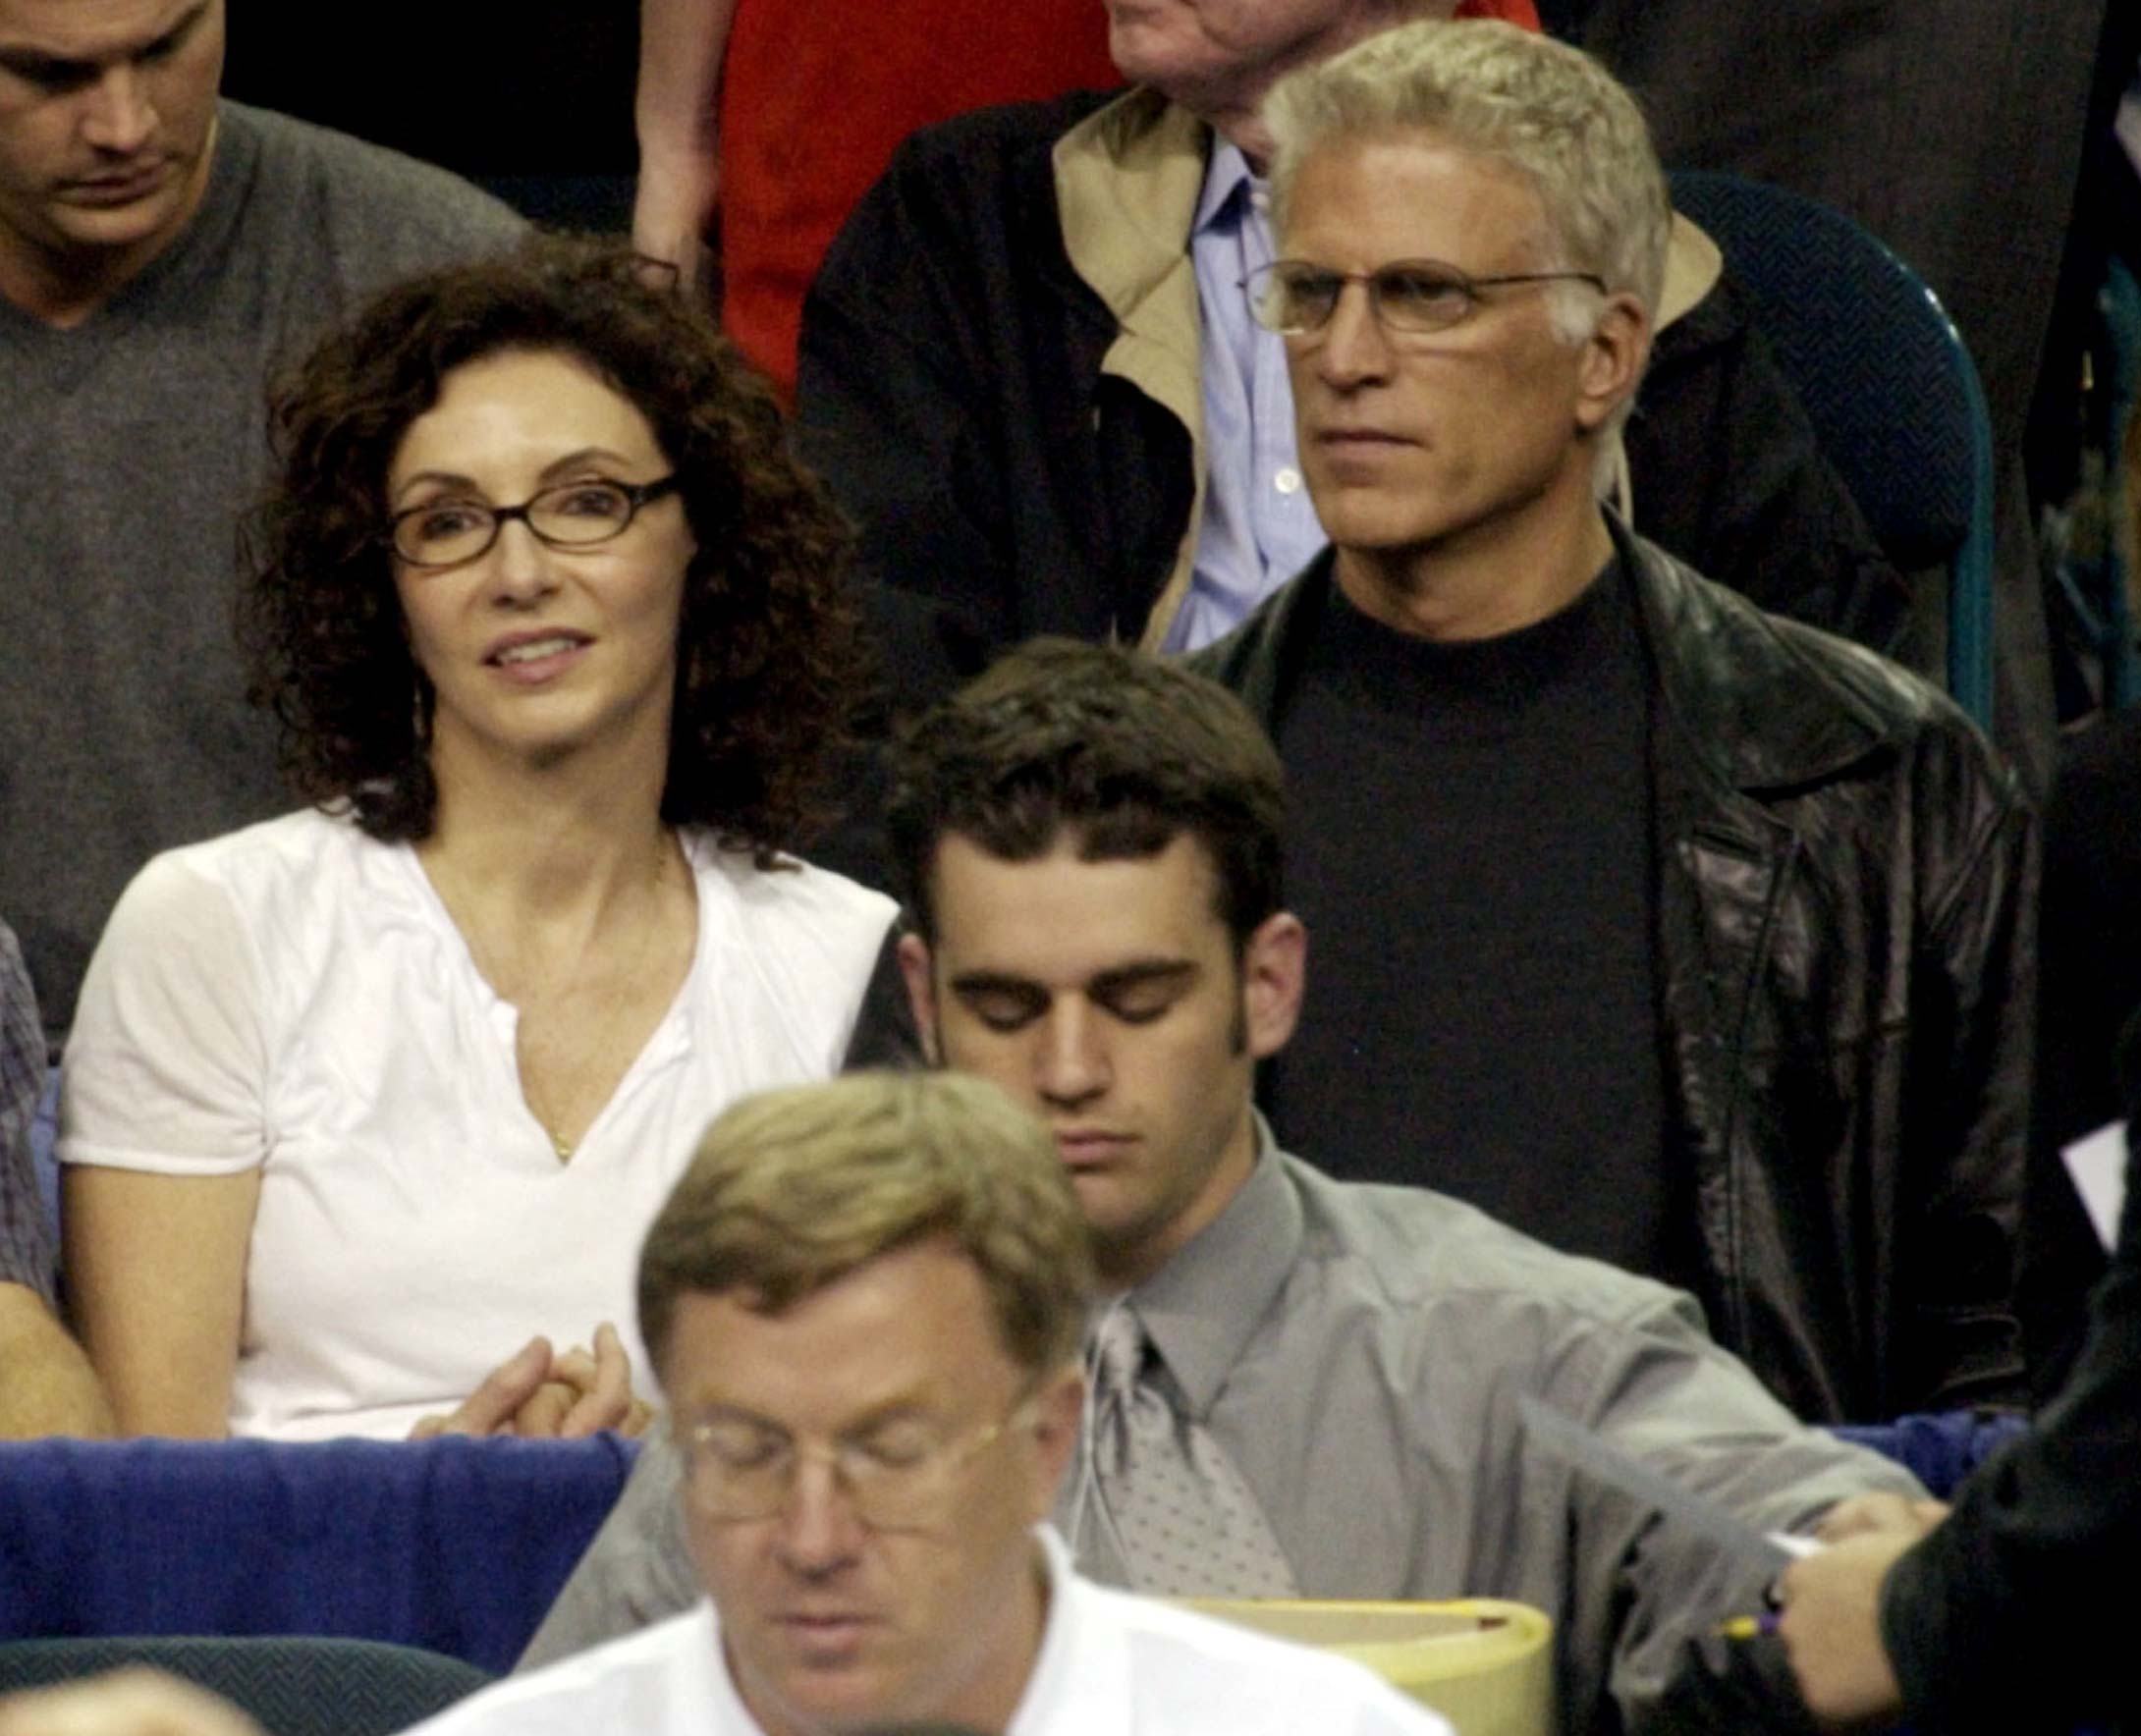 Ted Danson and his wife, Mary Steenburgen, watch Indiana play Maryland in the NCAA championship game in the Georgia Dome on April 1, 2002, in Atlanta.